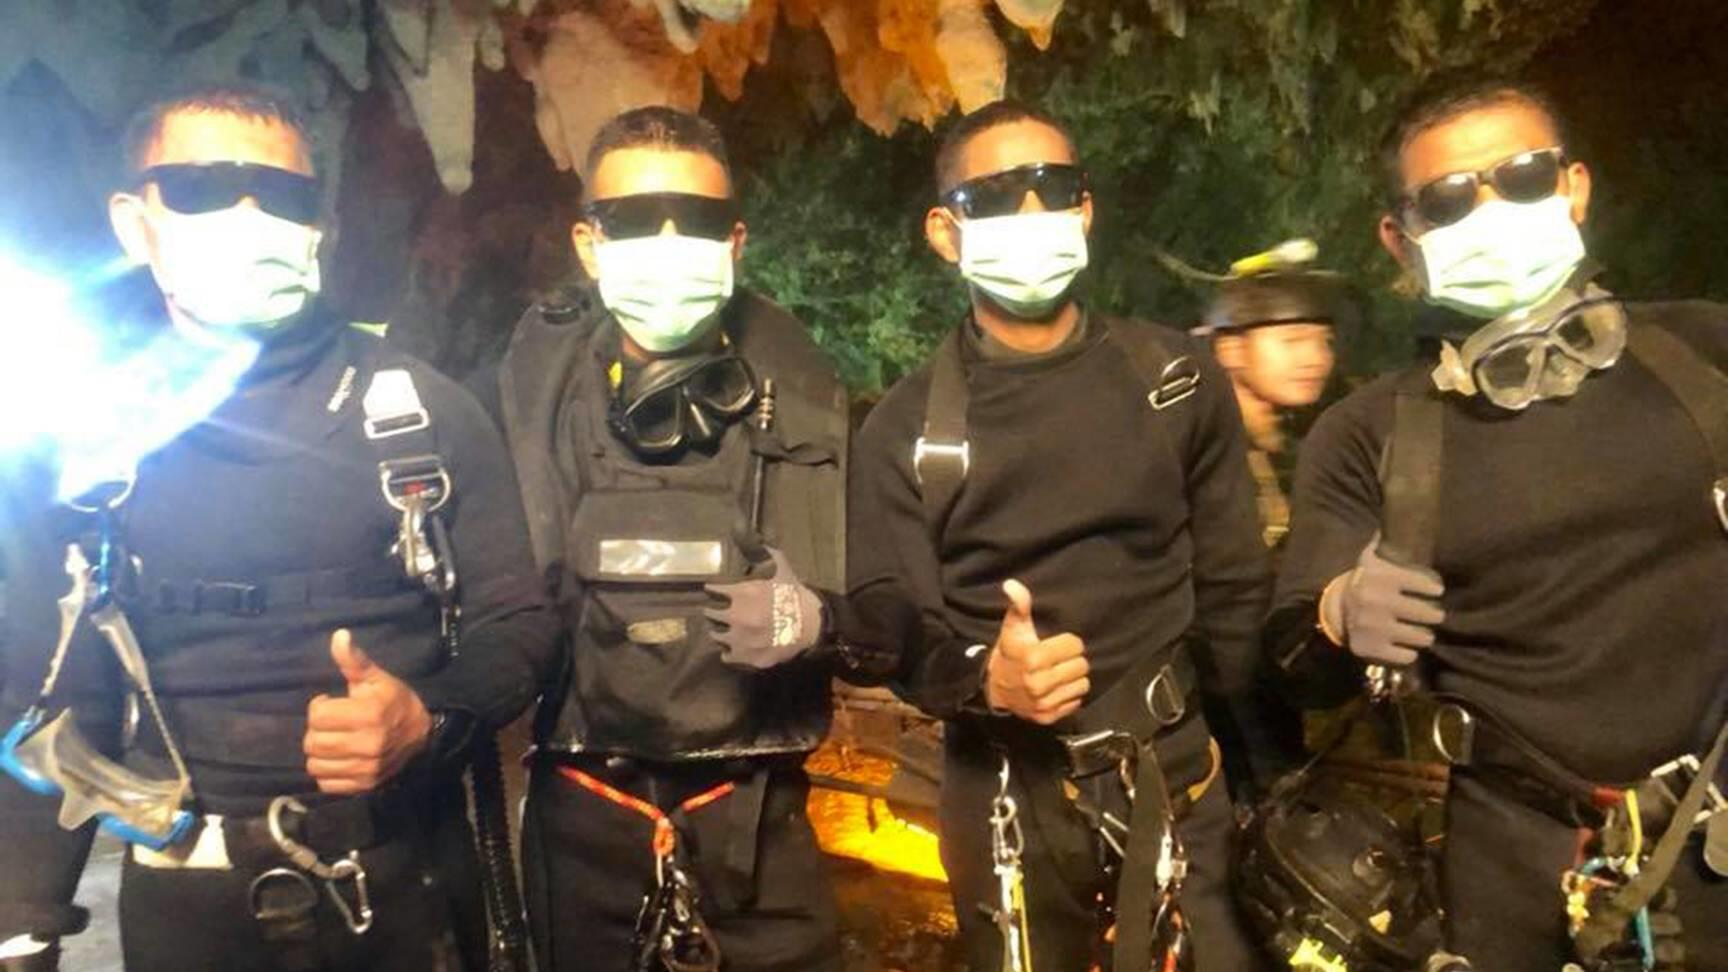 News-Bilder des Tages (180710) -- CHIANG RAI, July 10, 2018 -- Photo released by Royal Thai Navy on July 10, 2018 shows the last four Thai Navy SEAL divers coming out safely after completing the rescue mission inside the Tham Luang cave, in Chiang Ra